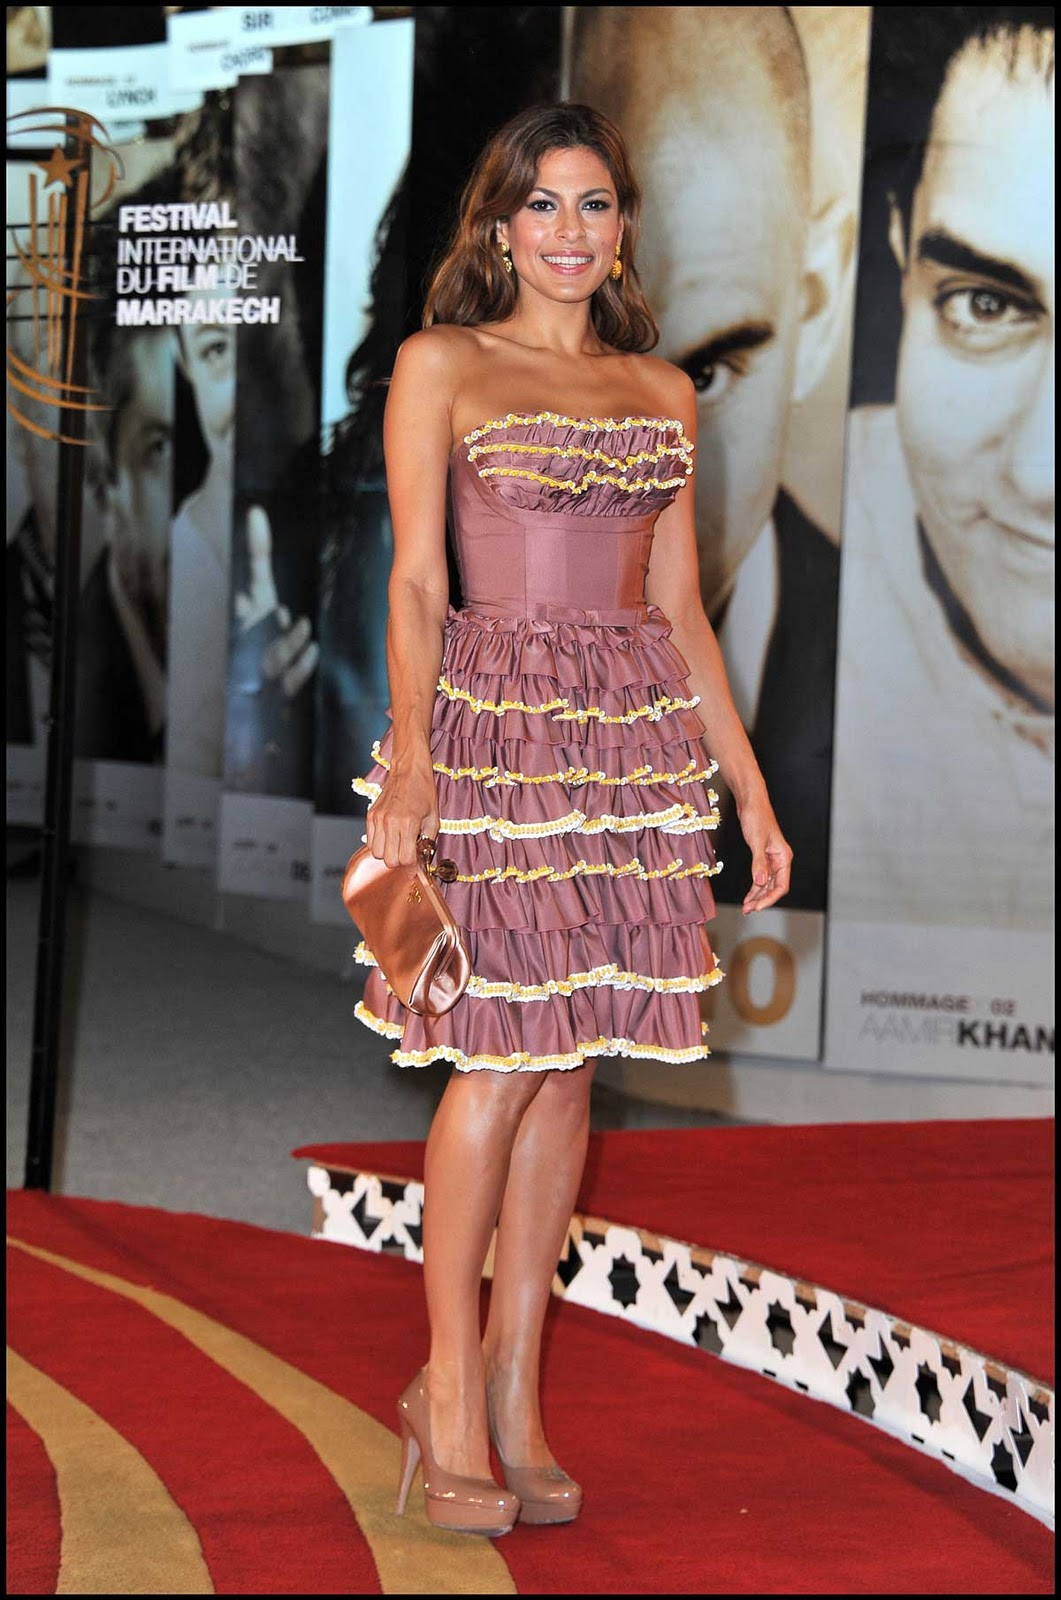 Eva Mendes Spreads Some Latina Hotness In A Gorgeous Dress